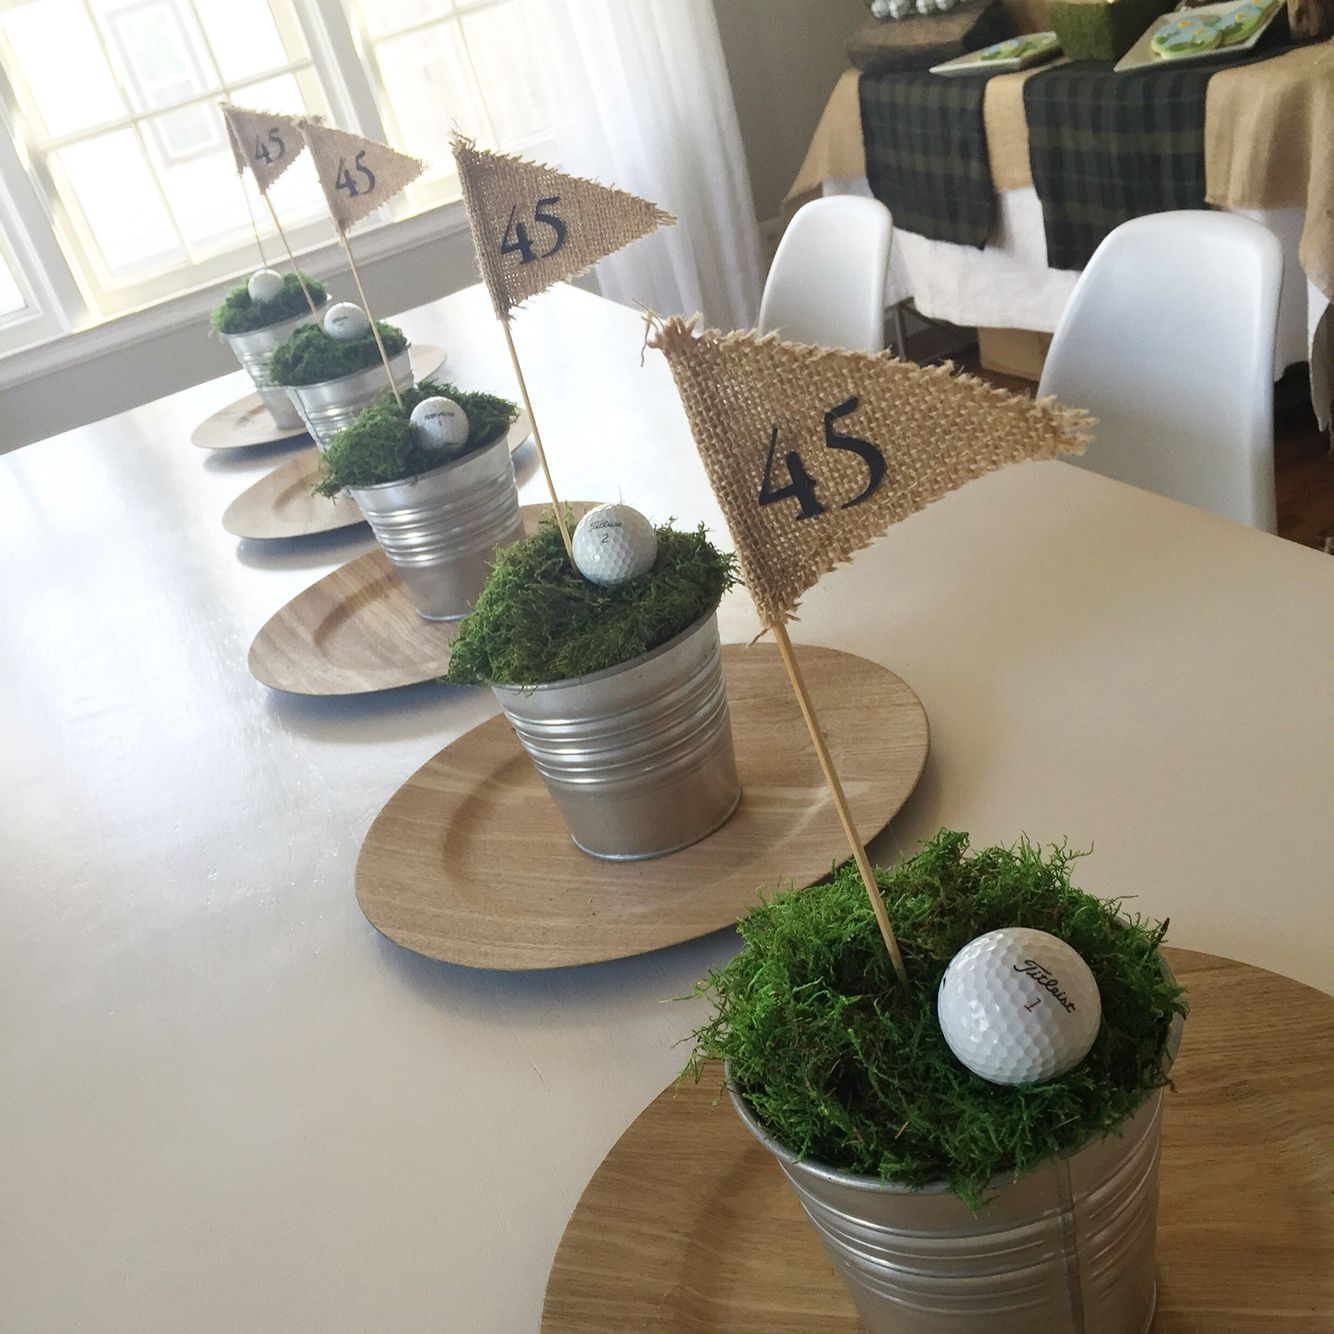 themenparty #golf! #kgc #idee #party #deko | golf geschenkideen in